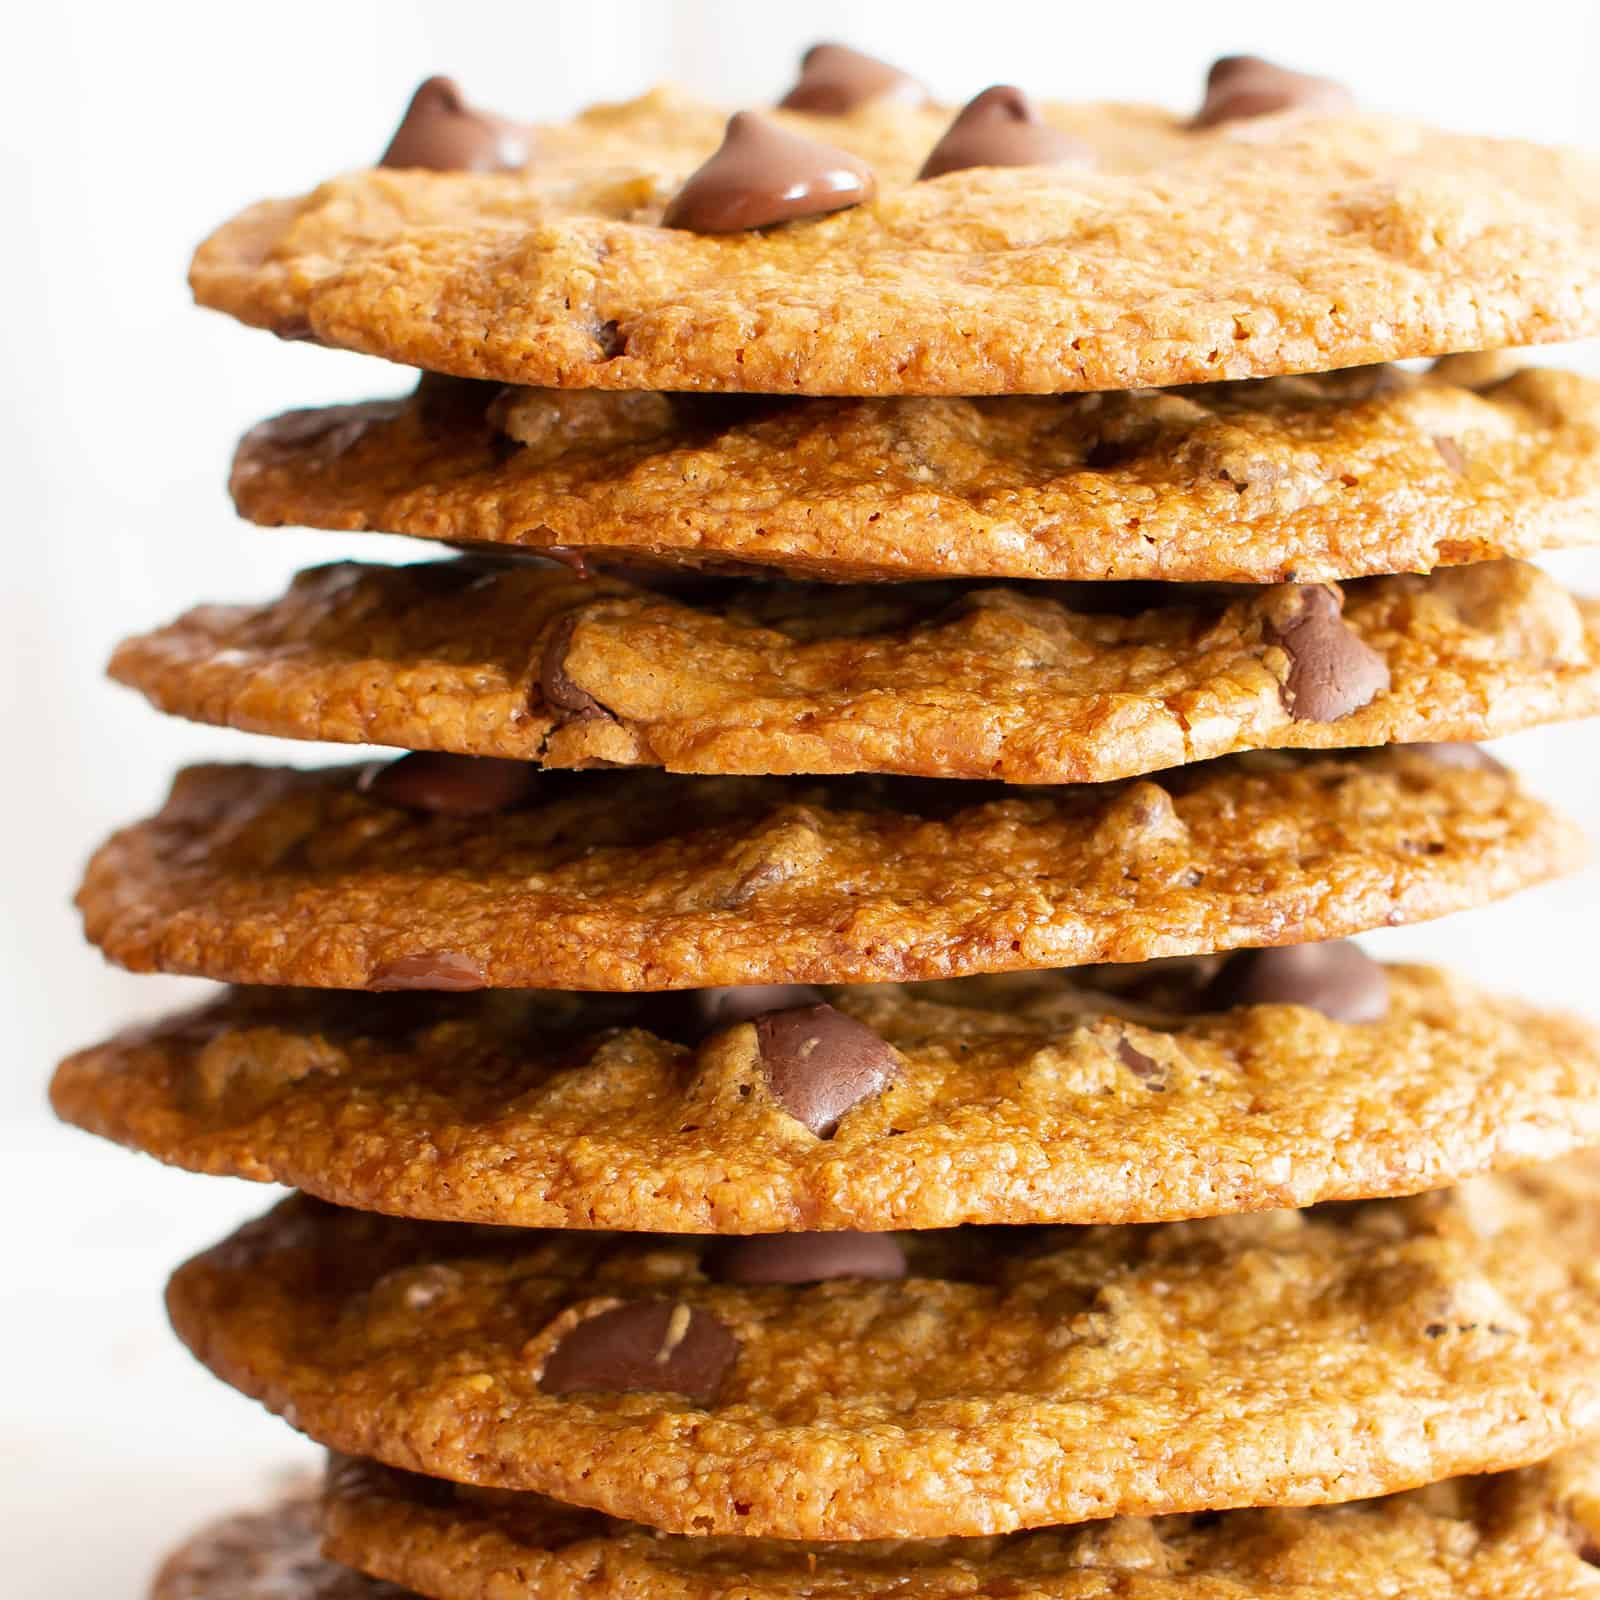 The BEST Vegan Gluten Free Cookies, all in one place! Find vegan gluten free oatmeal cookies, vegan gluten free chocolate chip cookies, V+GF peanut butter cookies, cookie dough, oatmeal raisin and more! #VeganGlutenFree #VeganCookies #GlutenFreeVegan #GlutenFreeCookies | Recipes at BeamingBaker.com